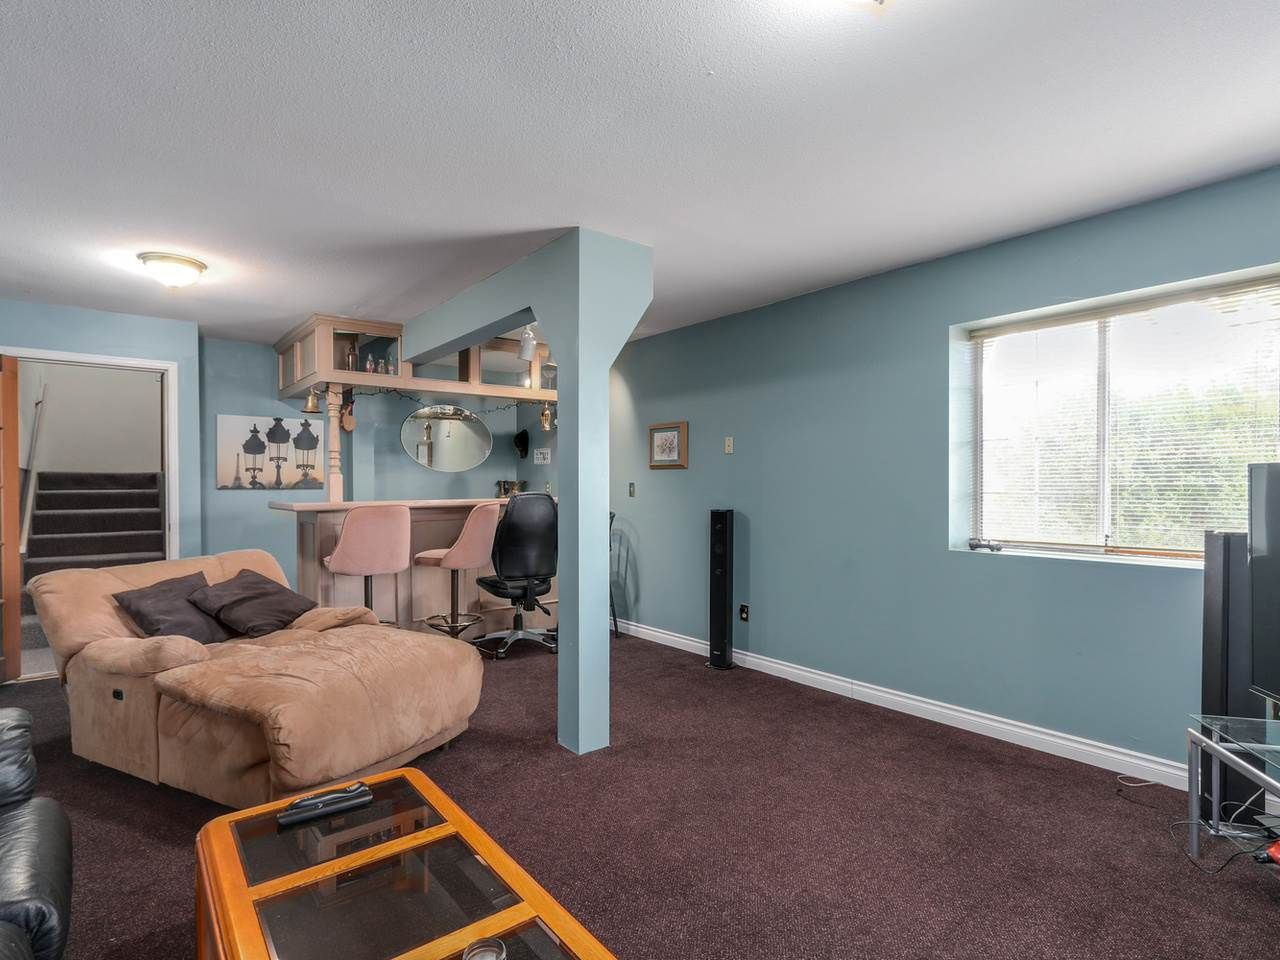 """Photo 16: Photos: 2559 BLUEBELL Avenue in Coquitlam: Summitt View House for sale in """"SUMMITT VIEW"""" : MLS®# R2064204"""